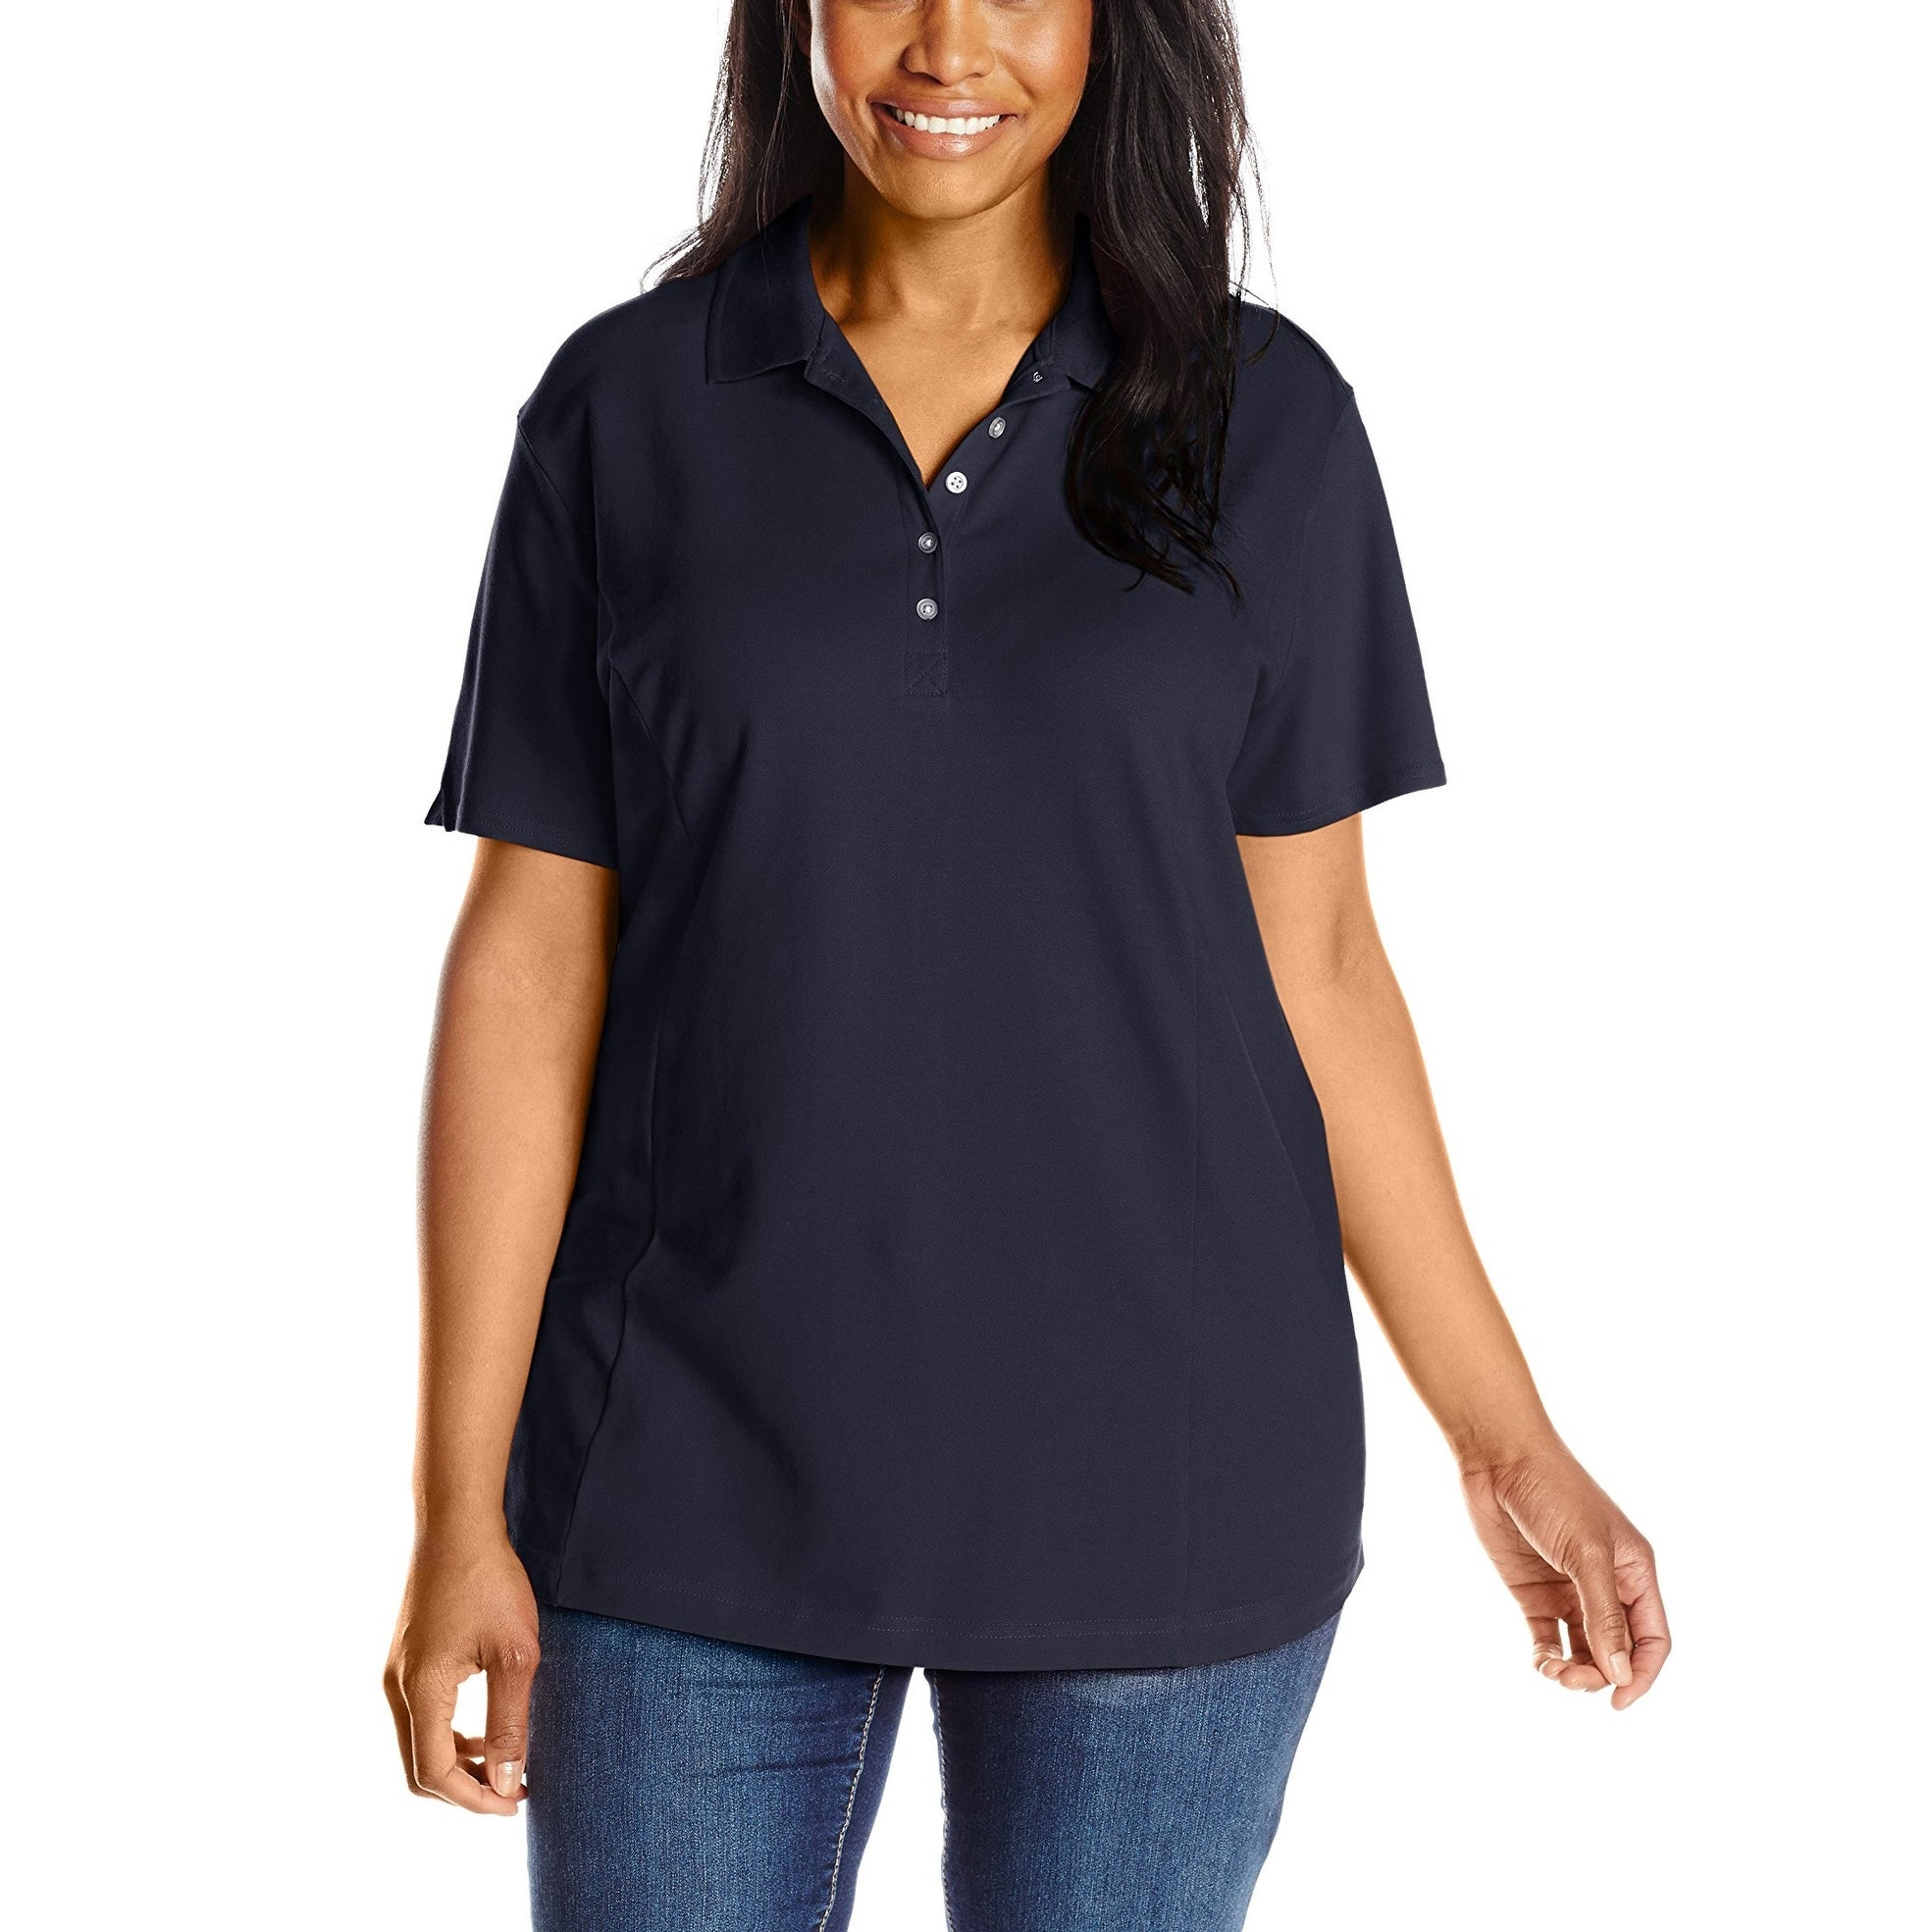 852bd739d5453 Shop Riders by Lee Indigo Dark Navy Blue Women s Size 2X Plus Polo Shirt -  Free Shipping On Orders Over  45 - Overstock - 28017164